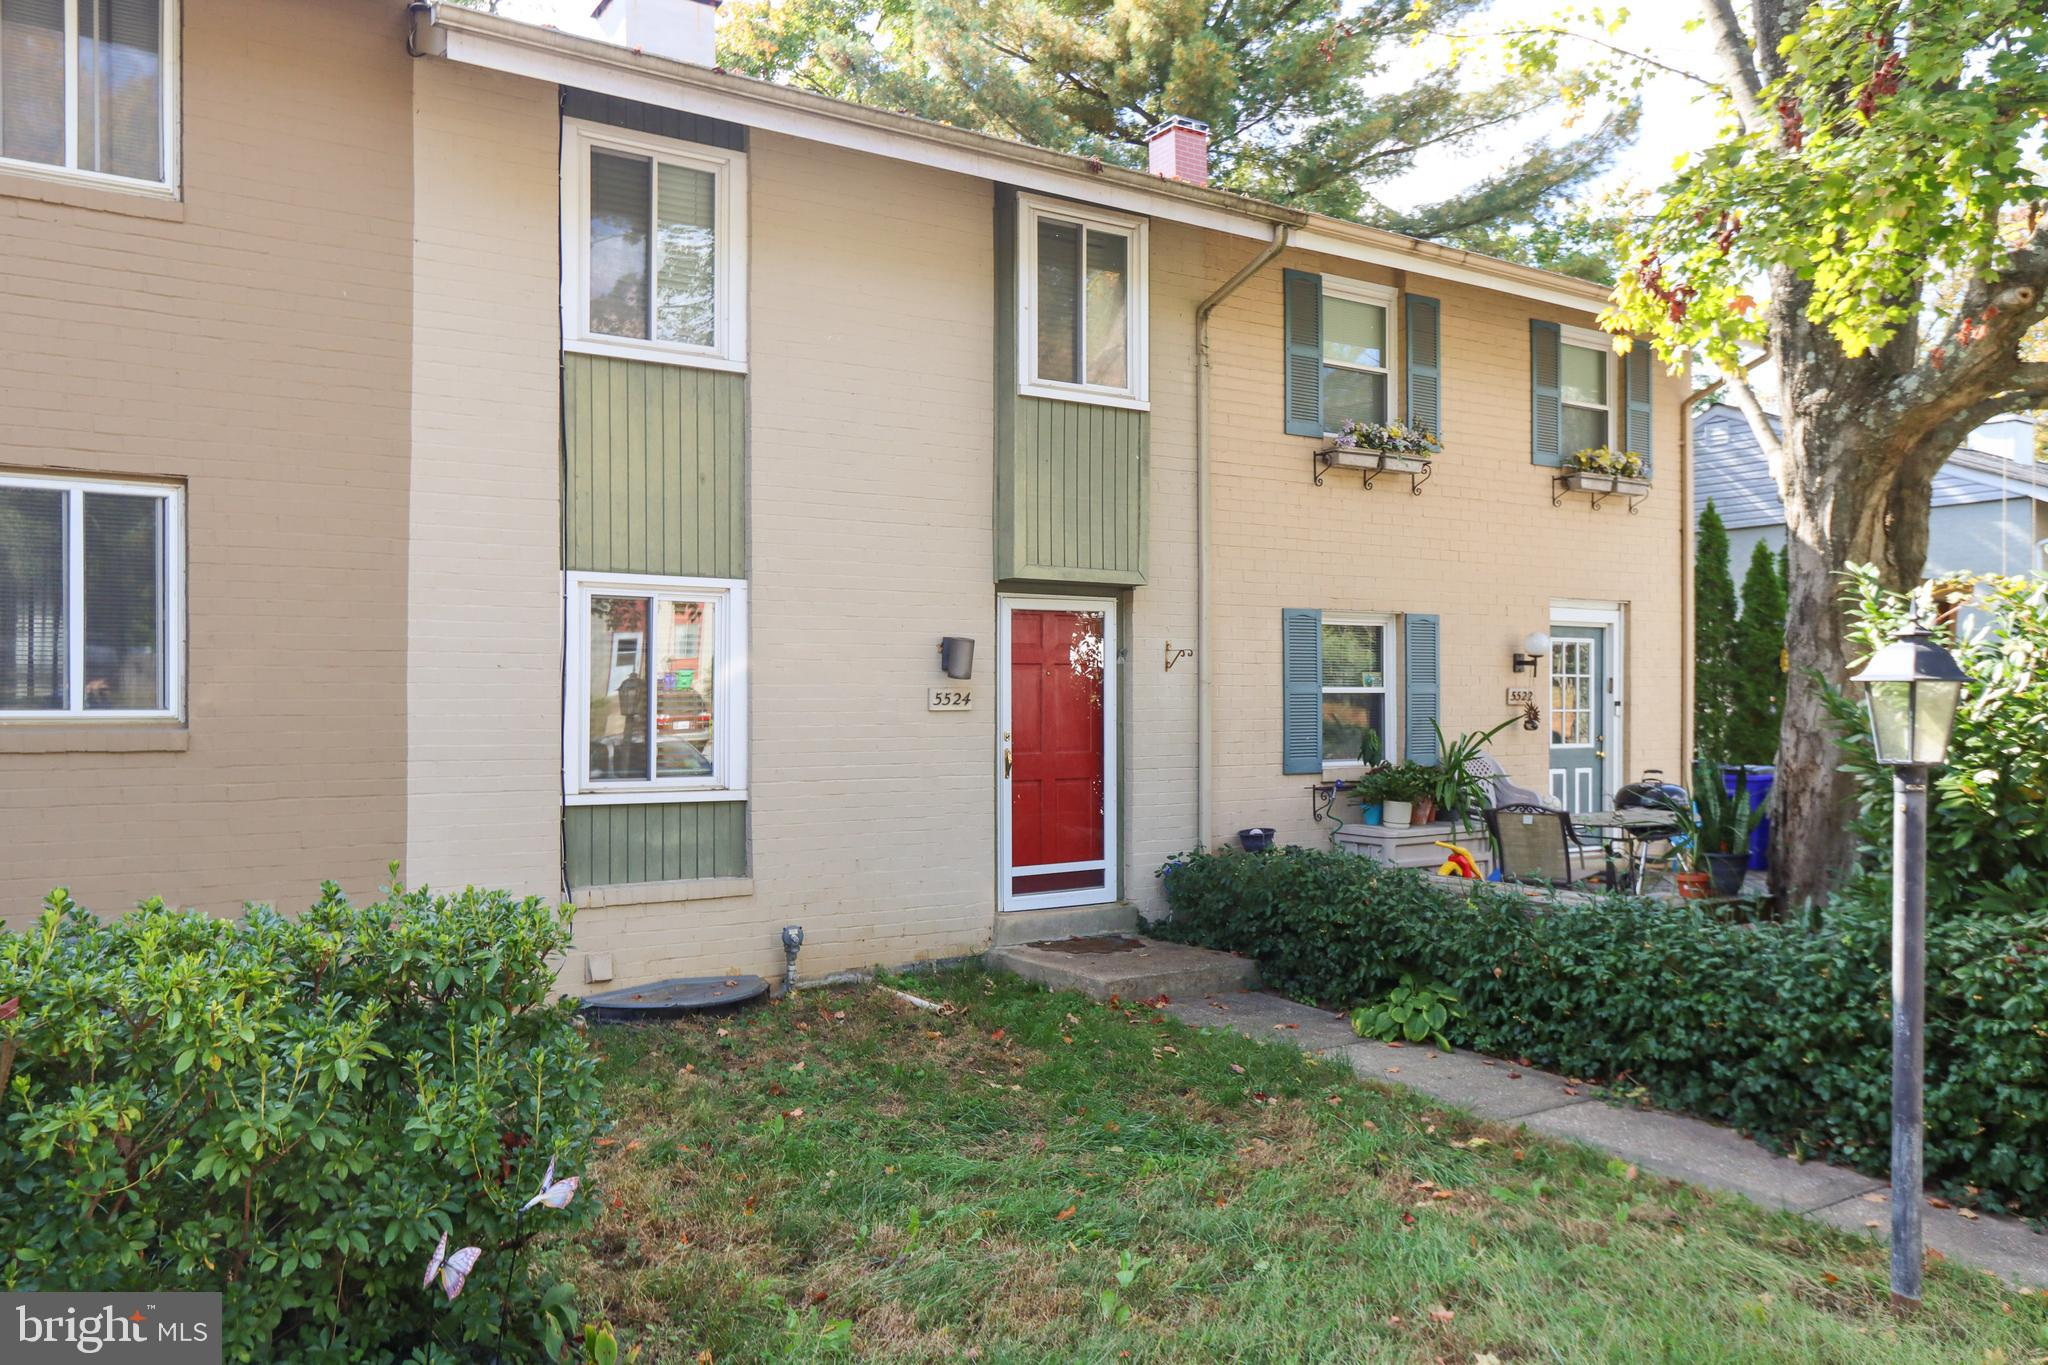 Rare find townhome with 3 bedrooms, 1 full bath, and 2 half baths in sought-after Harper's Choice. W